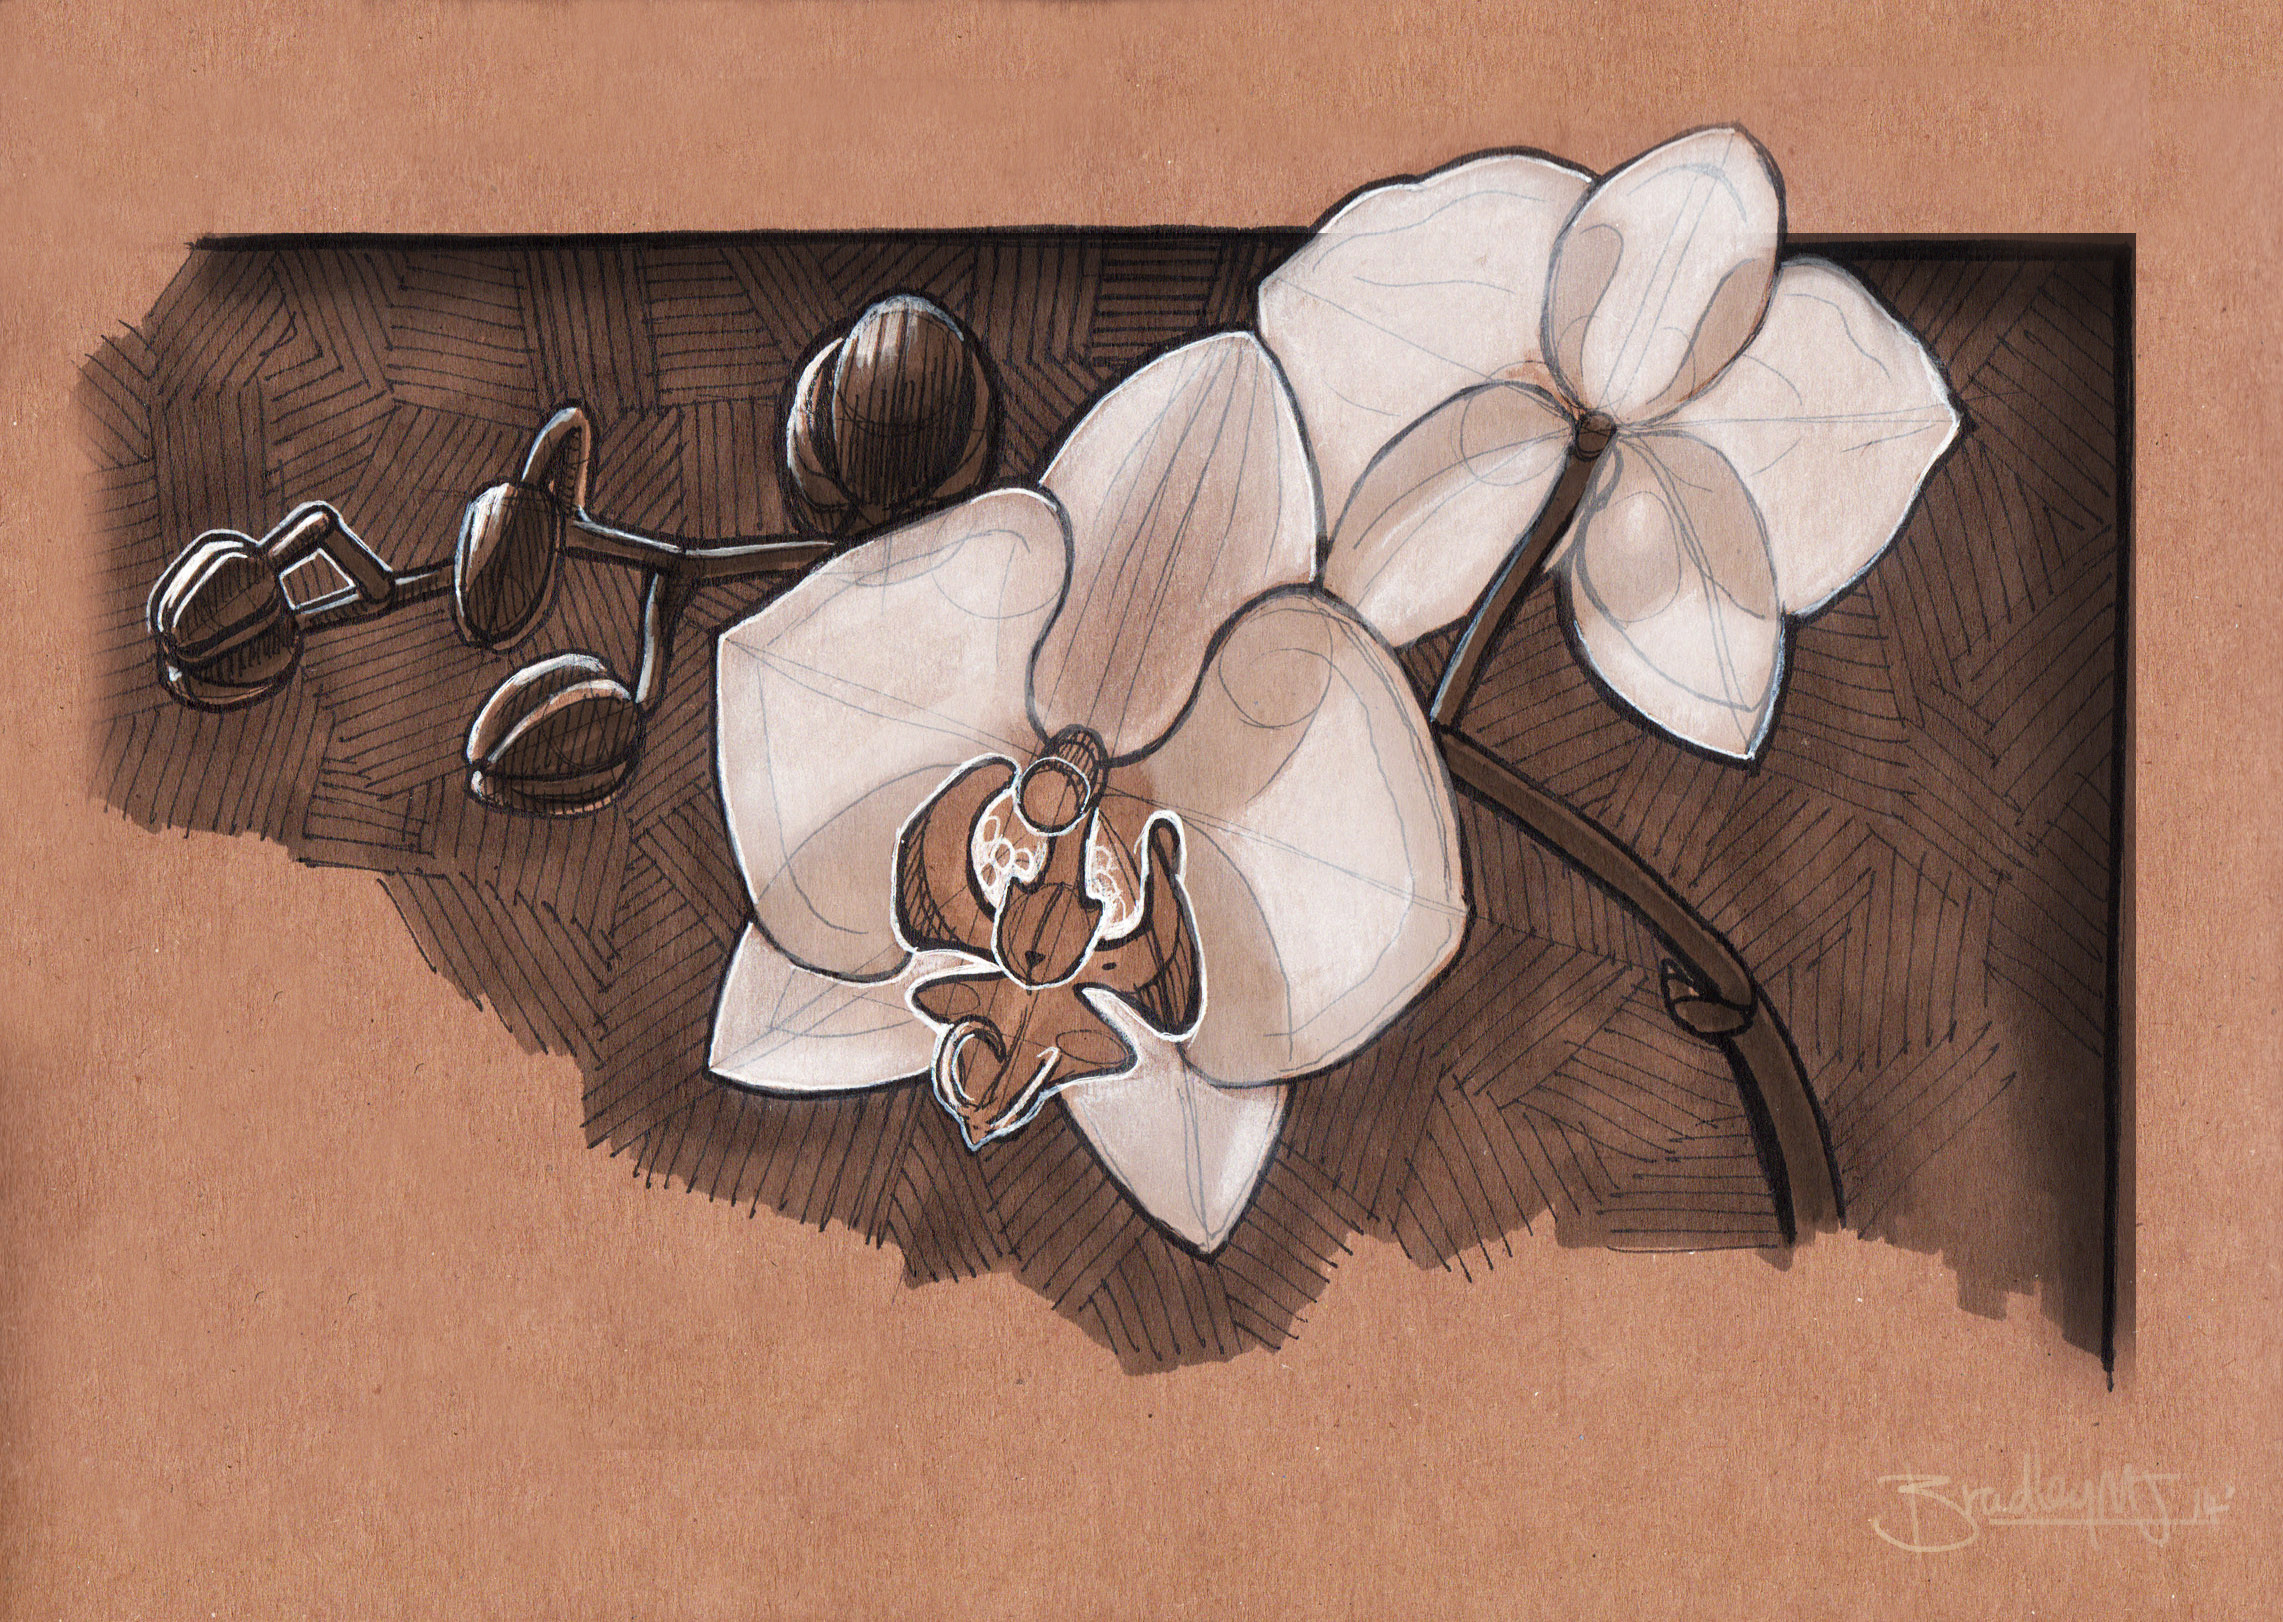 orchid studies from life, traditional mixed media